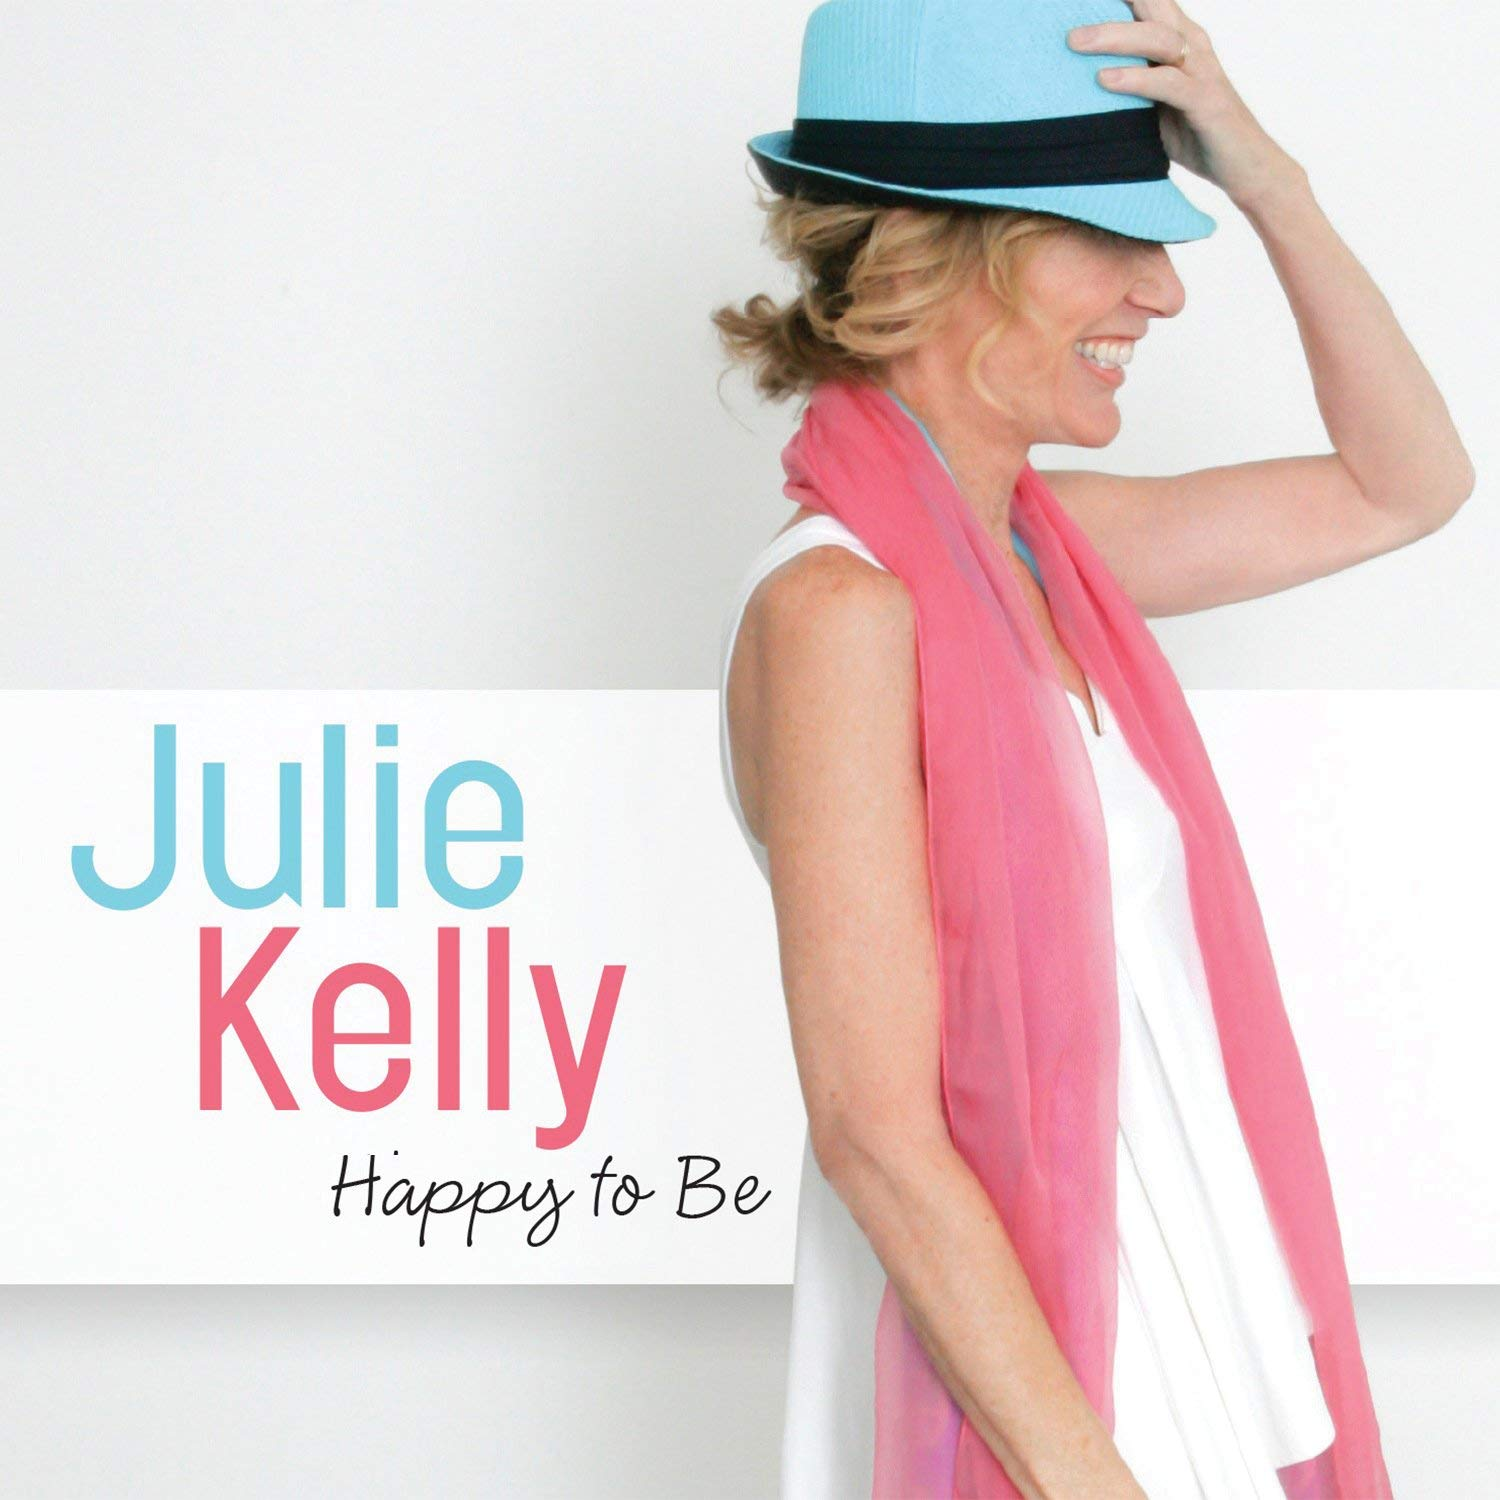 julie-kelly-happy-to-be.jpg